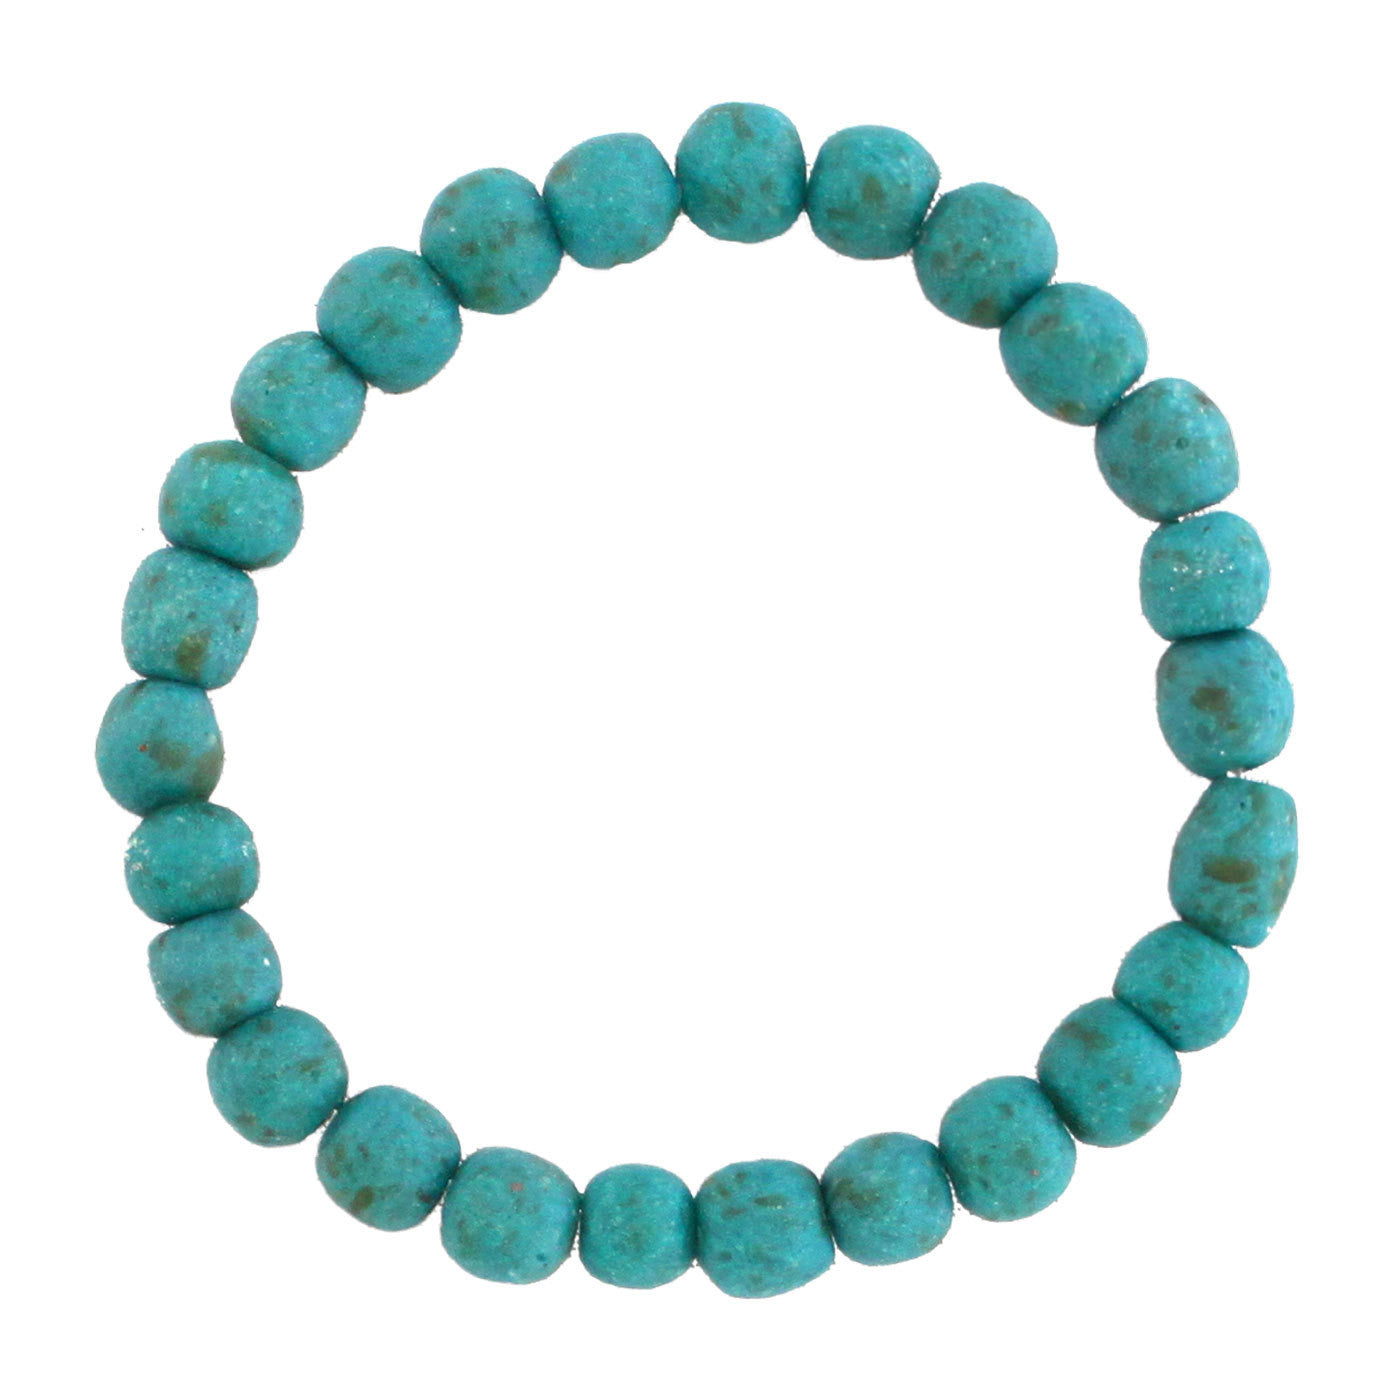 Recycled Glass Bead Bracelet Teal